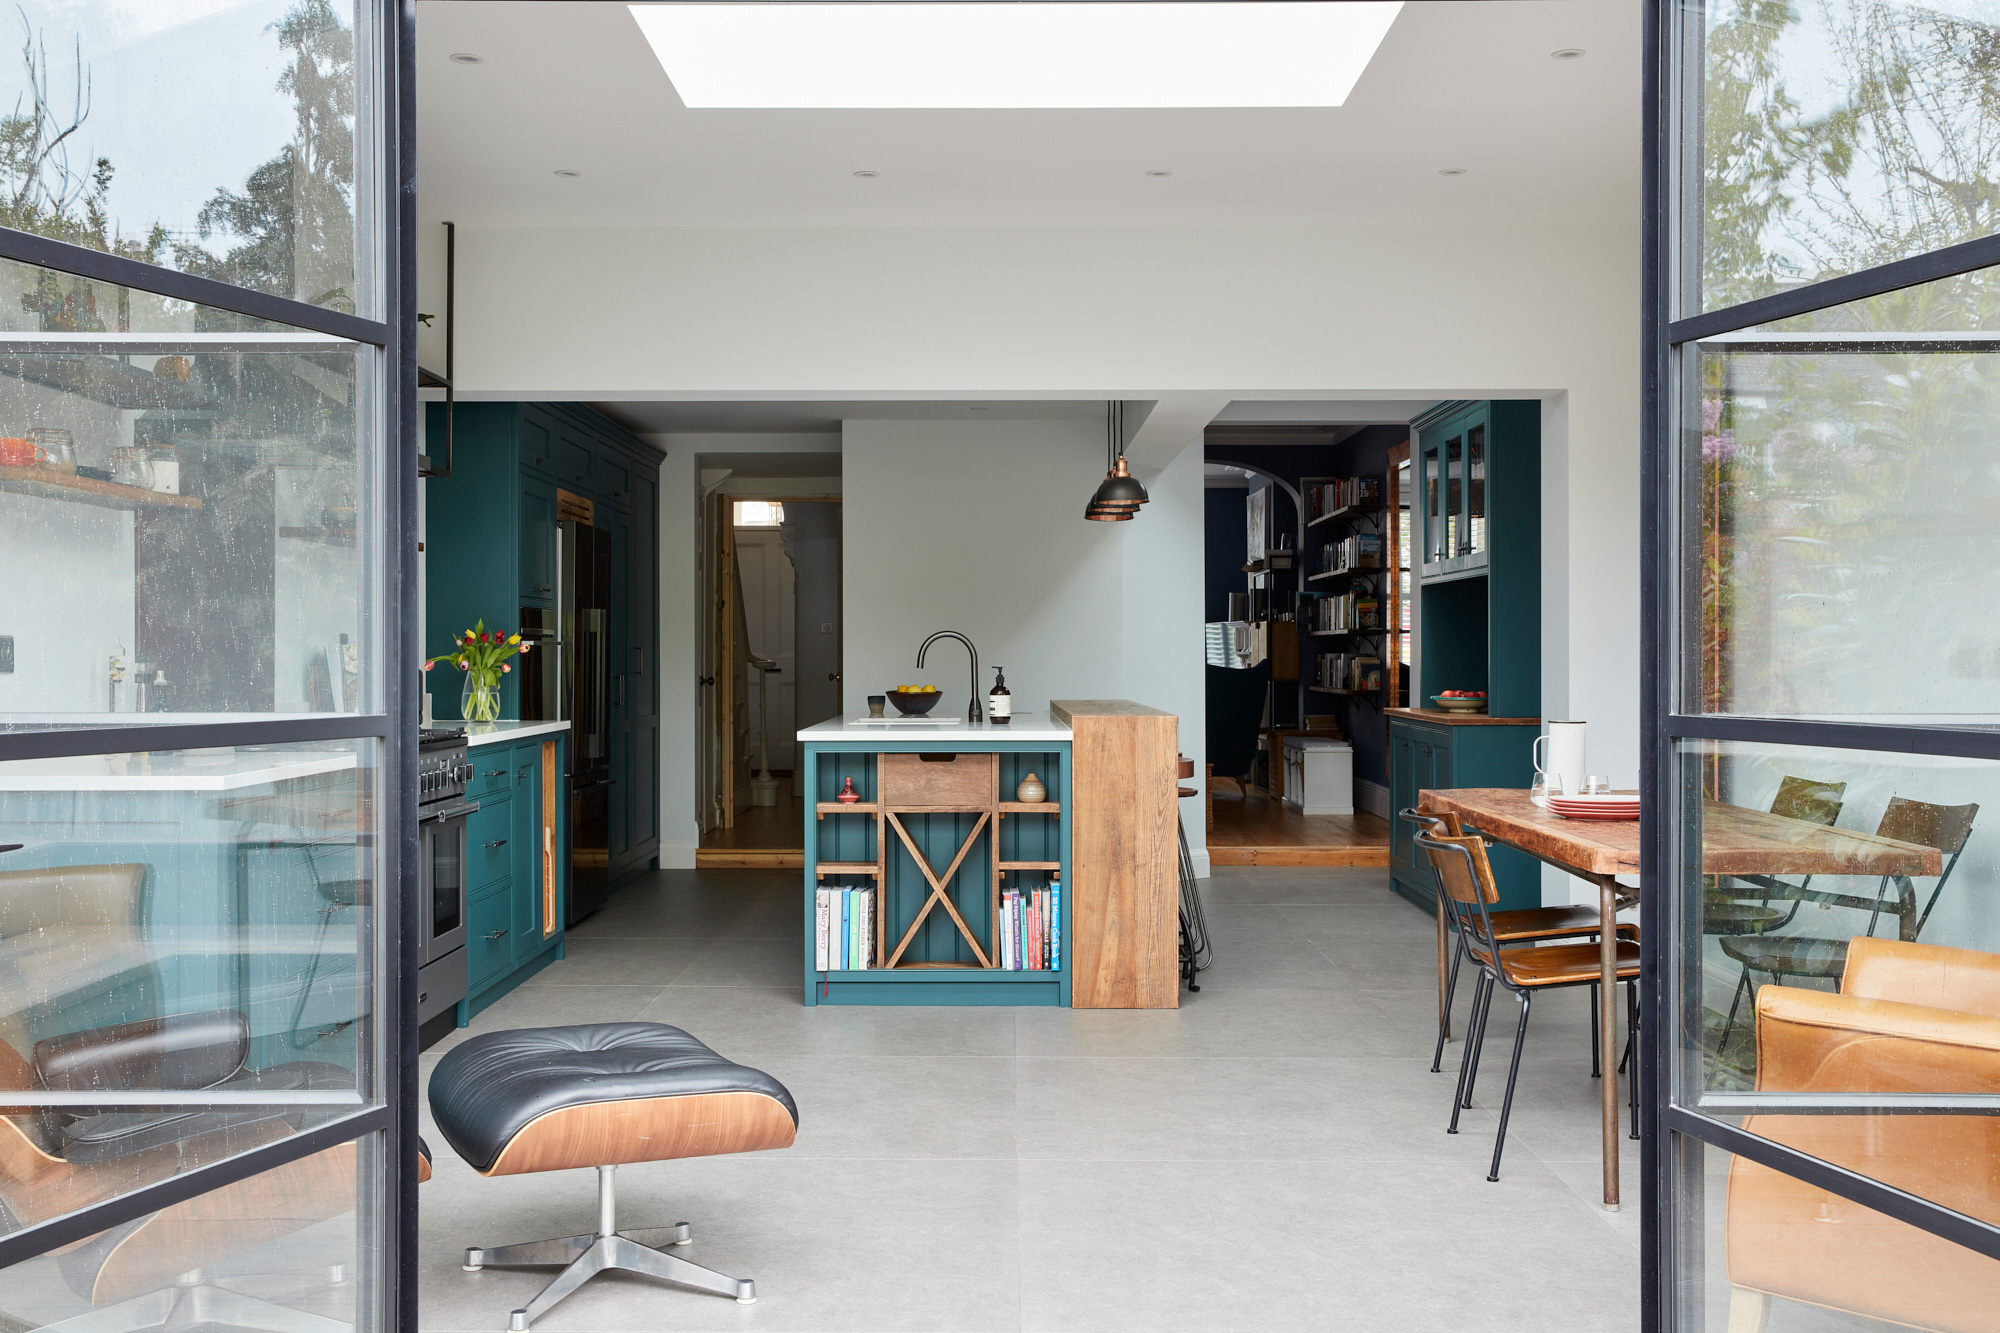 Crittall style doors with bespoke open plan industrial kitchen